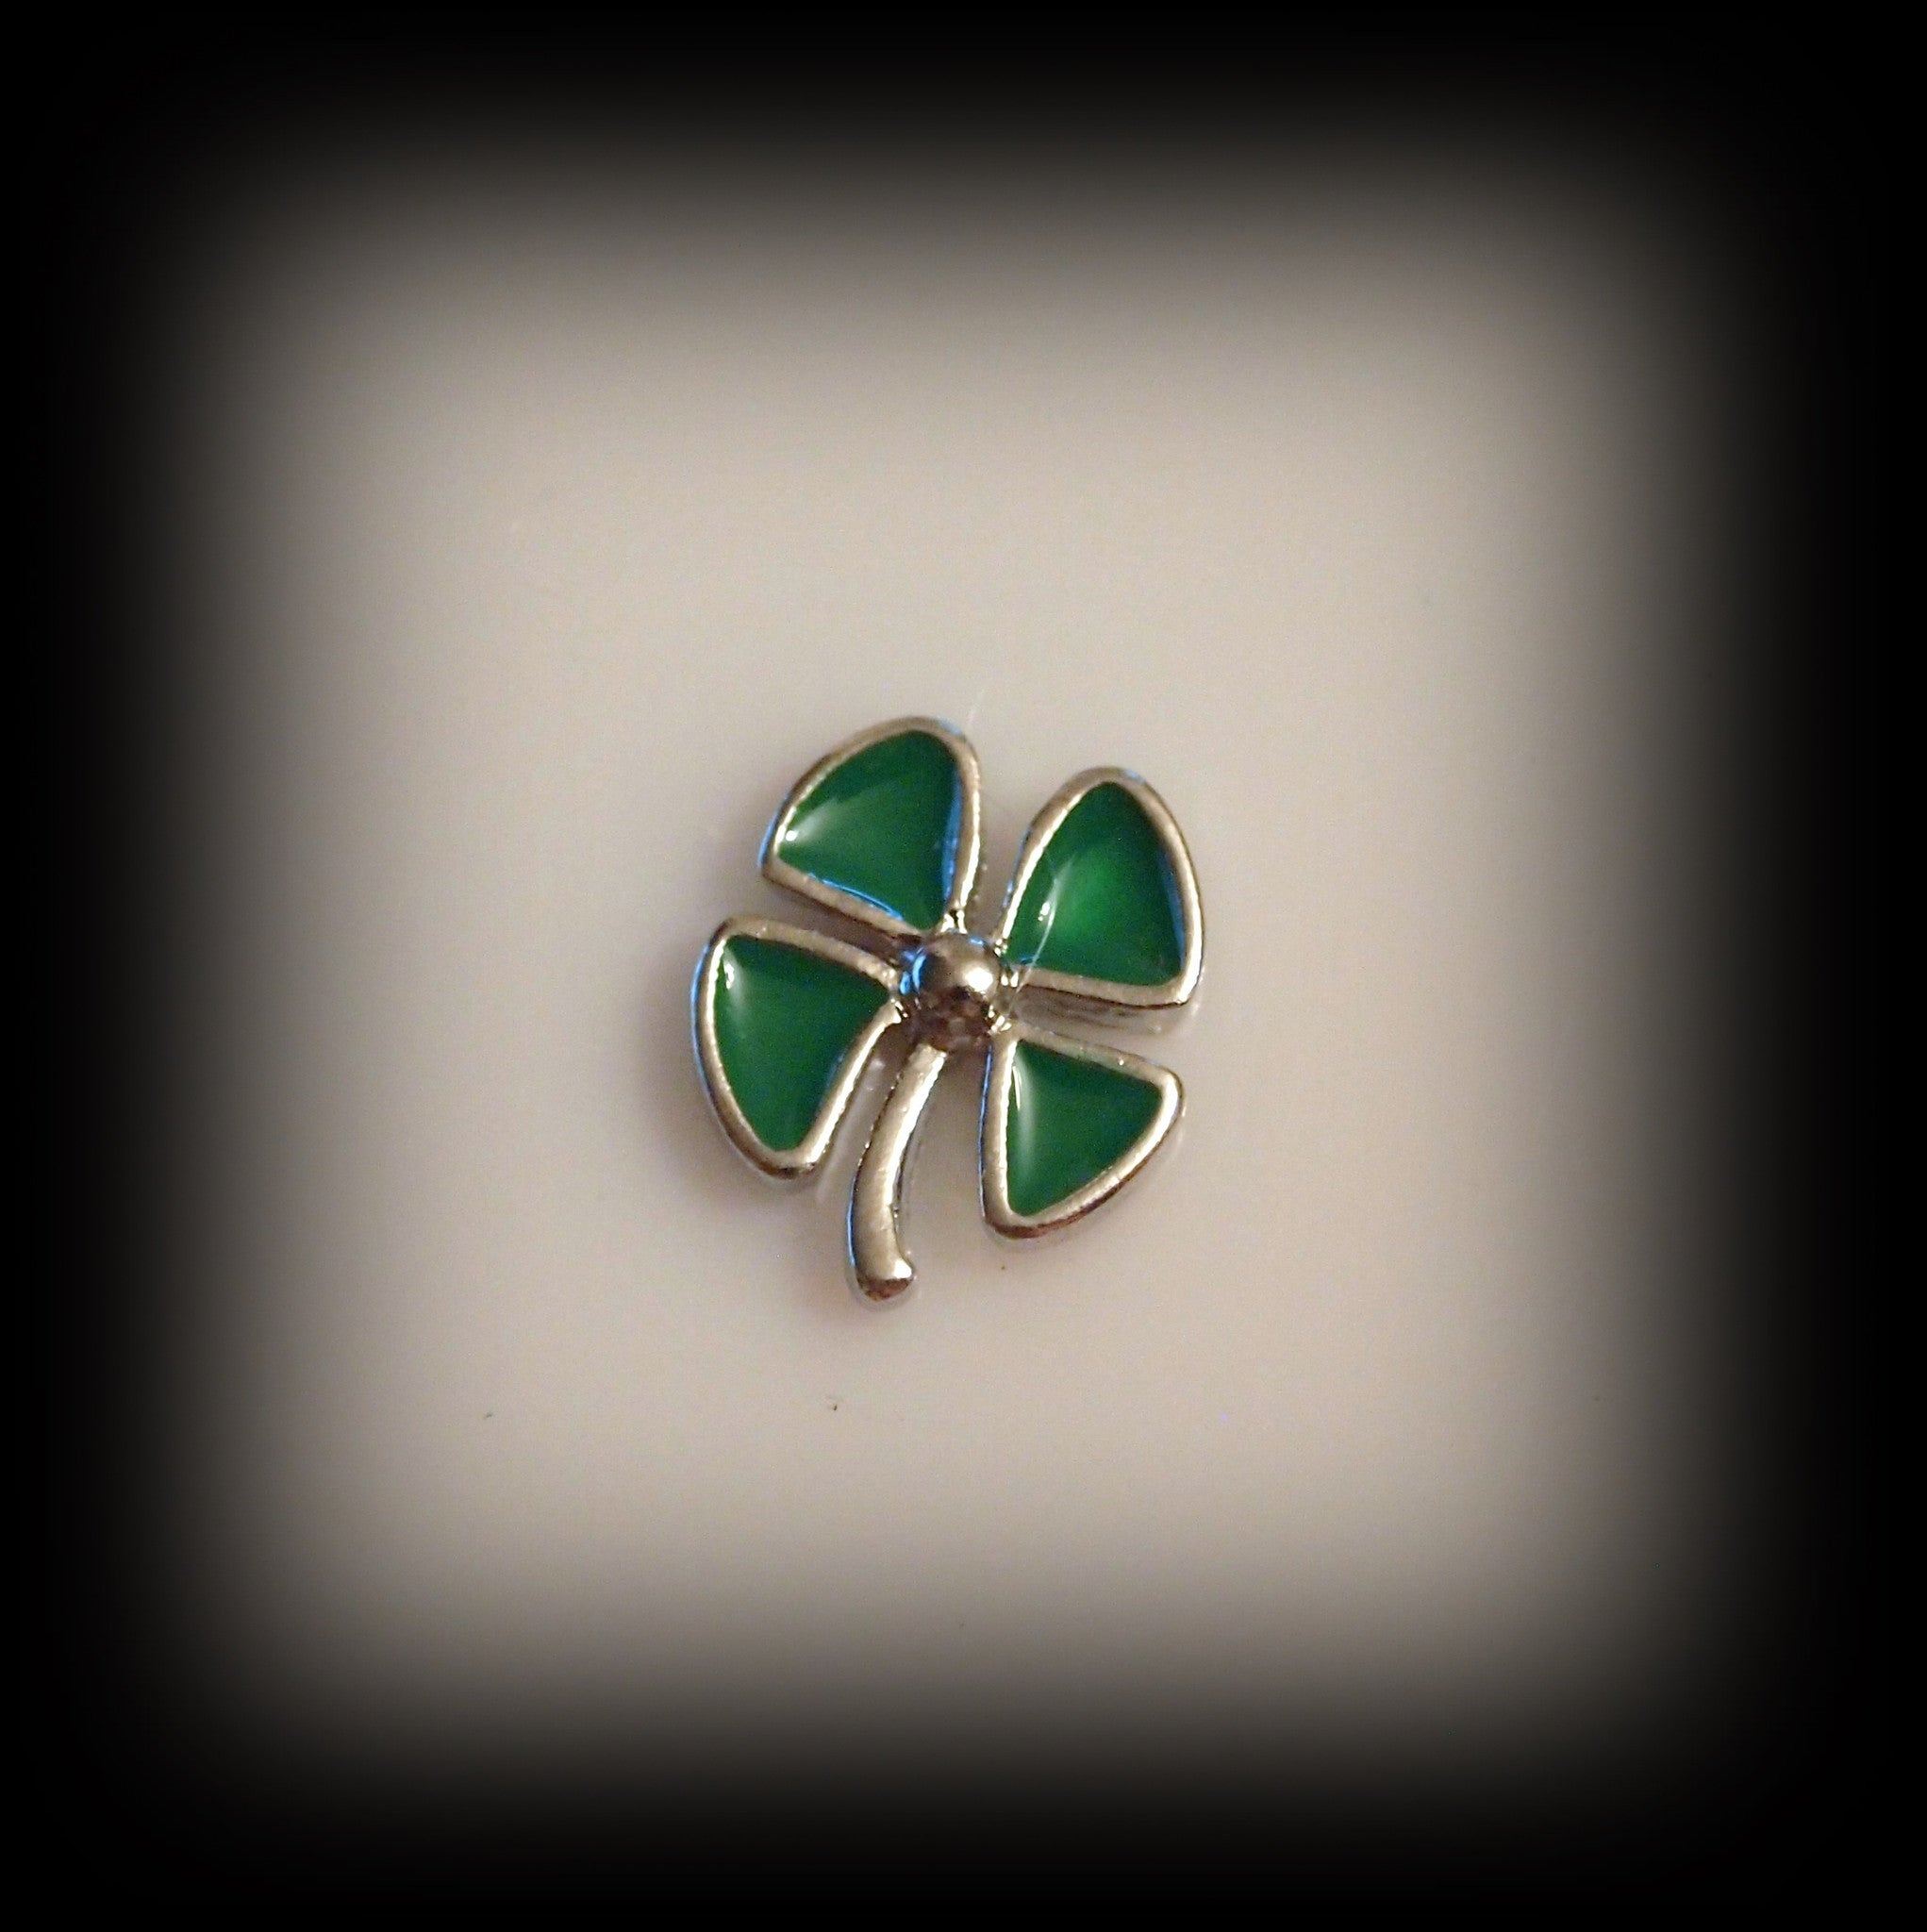 Four Leaf Clover Floating Charm - Find Something Special